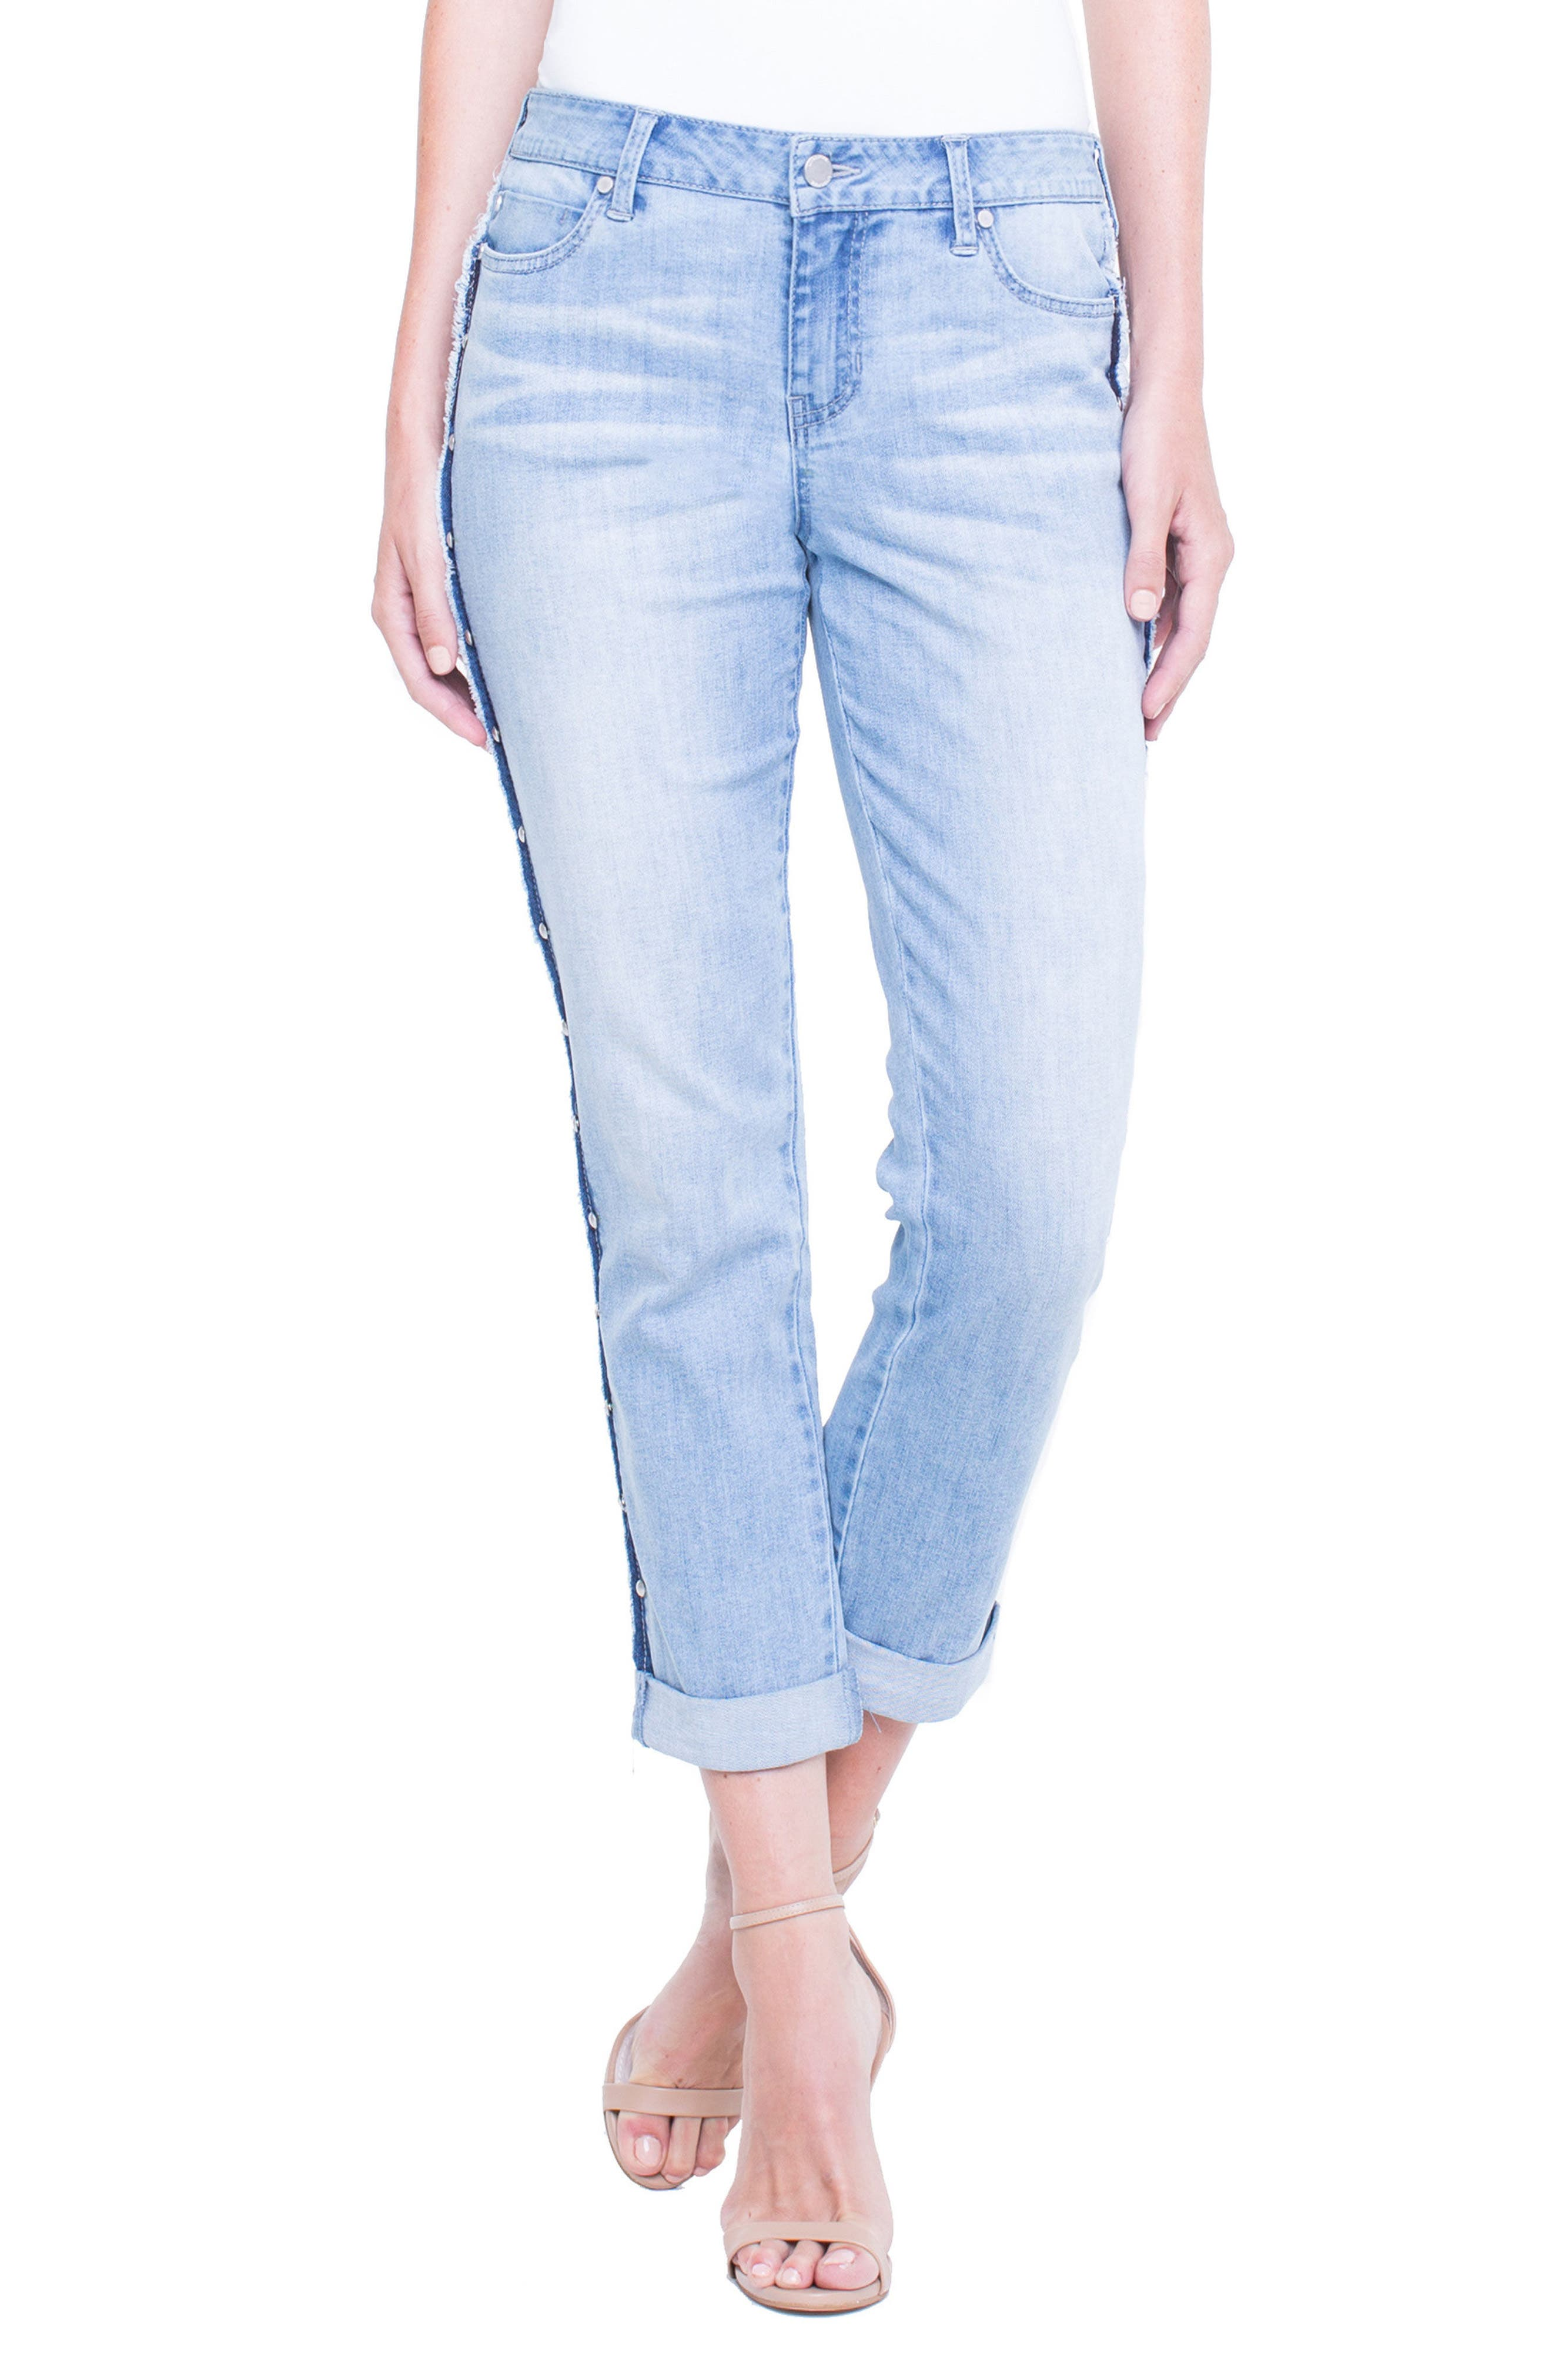 Liverpool Jeans Company Perry Slim Side Stud Boyfriend Jeans